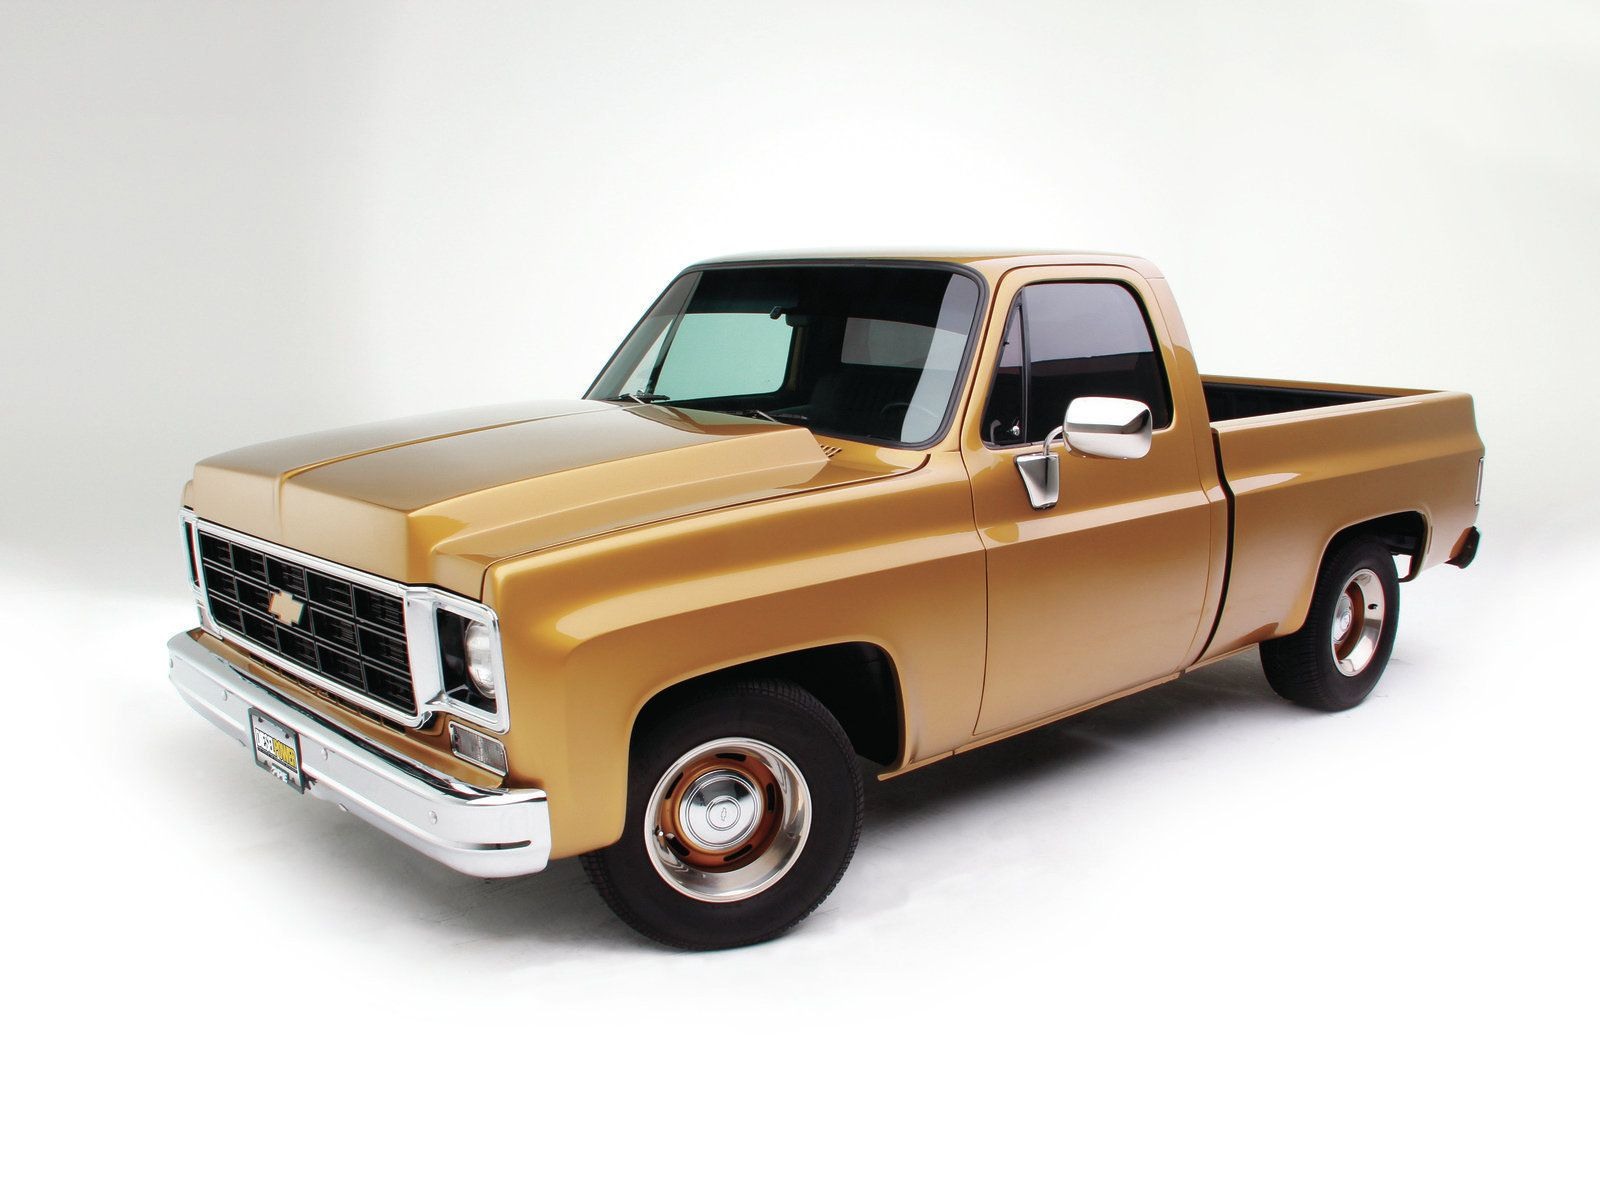 1977 chevy c10 stepside car interior design - 1976 Chevy C10 The Ultimate Swap Duramax Engine Photo 4